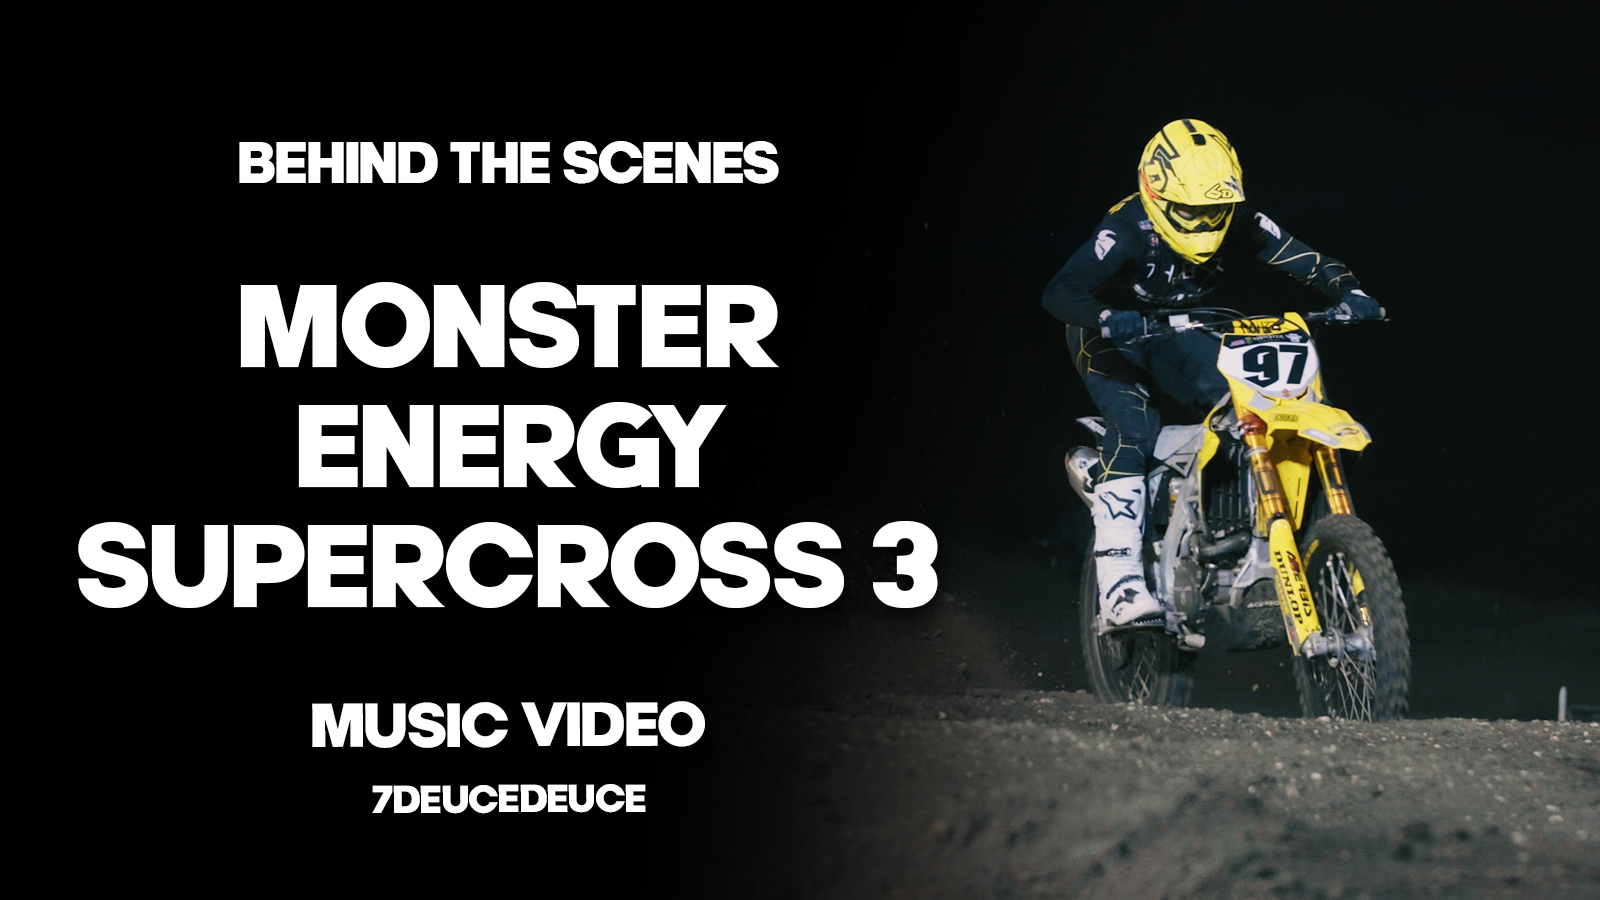 7 DeuceDeuce Music Video - Behind The Scenes